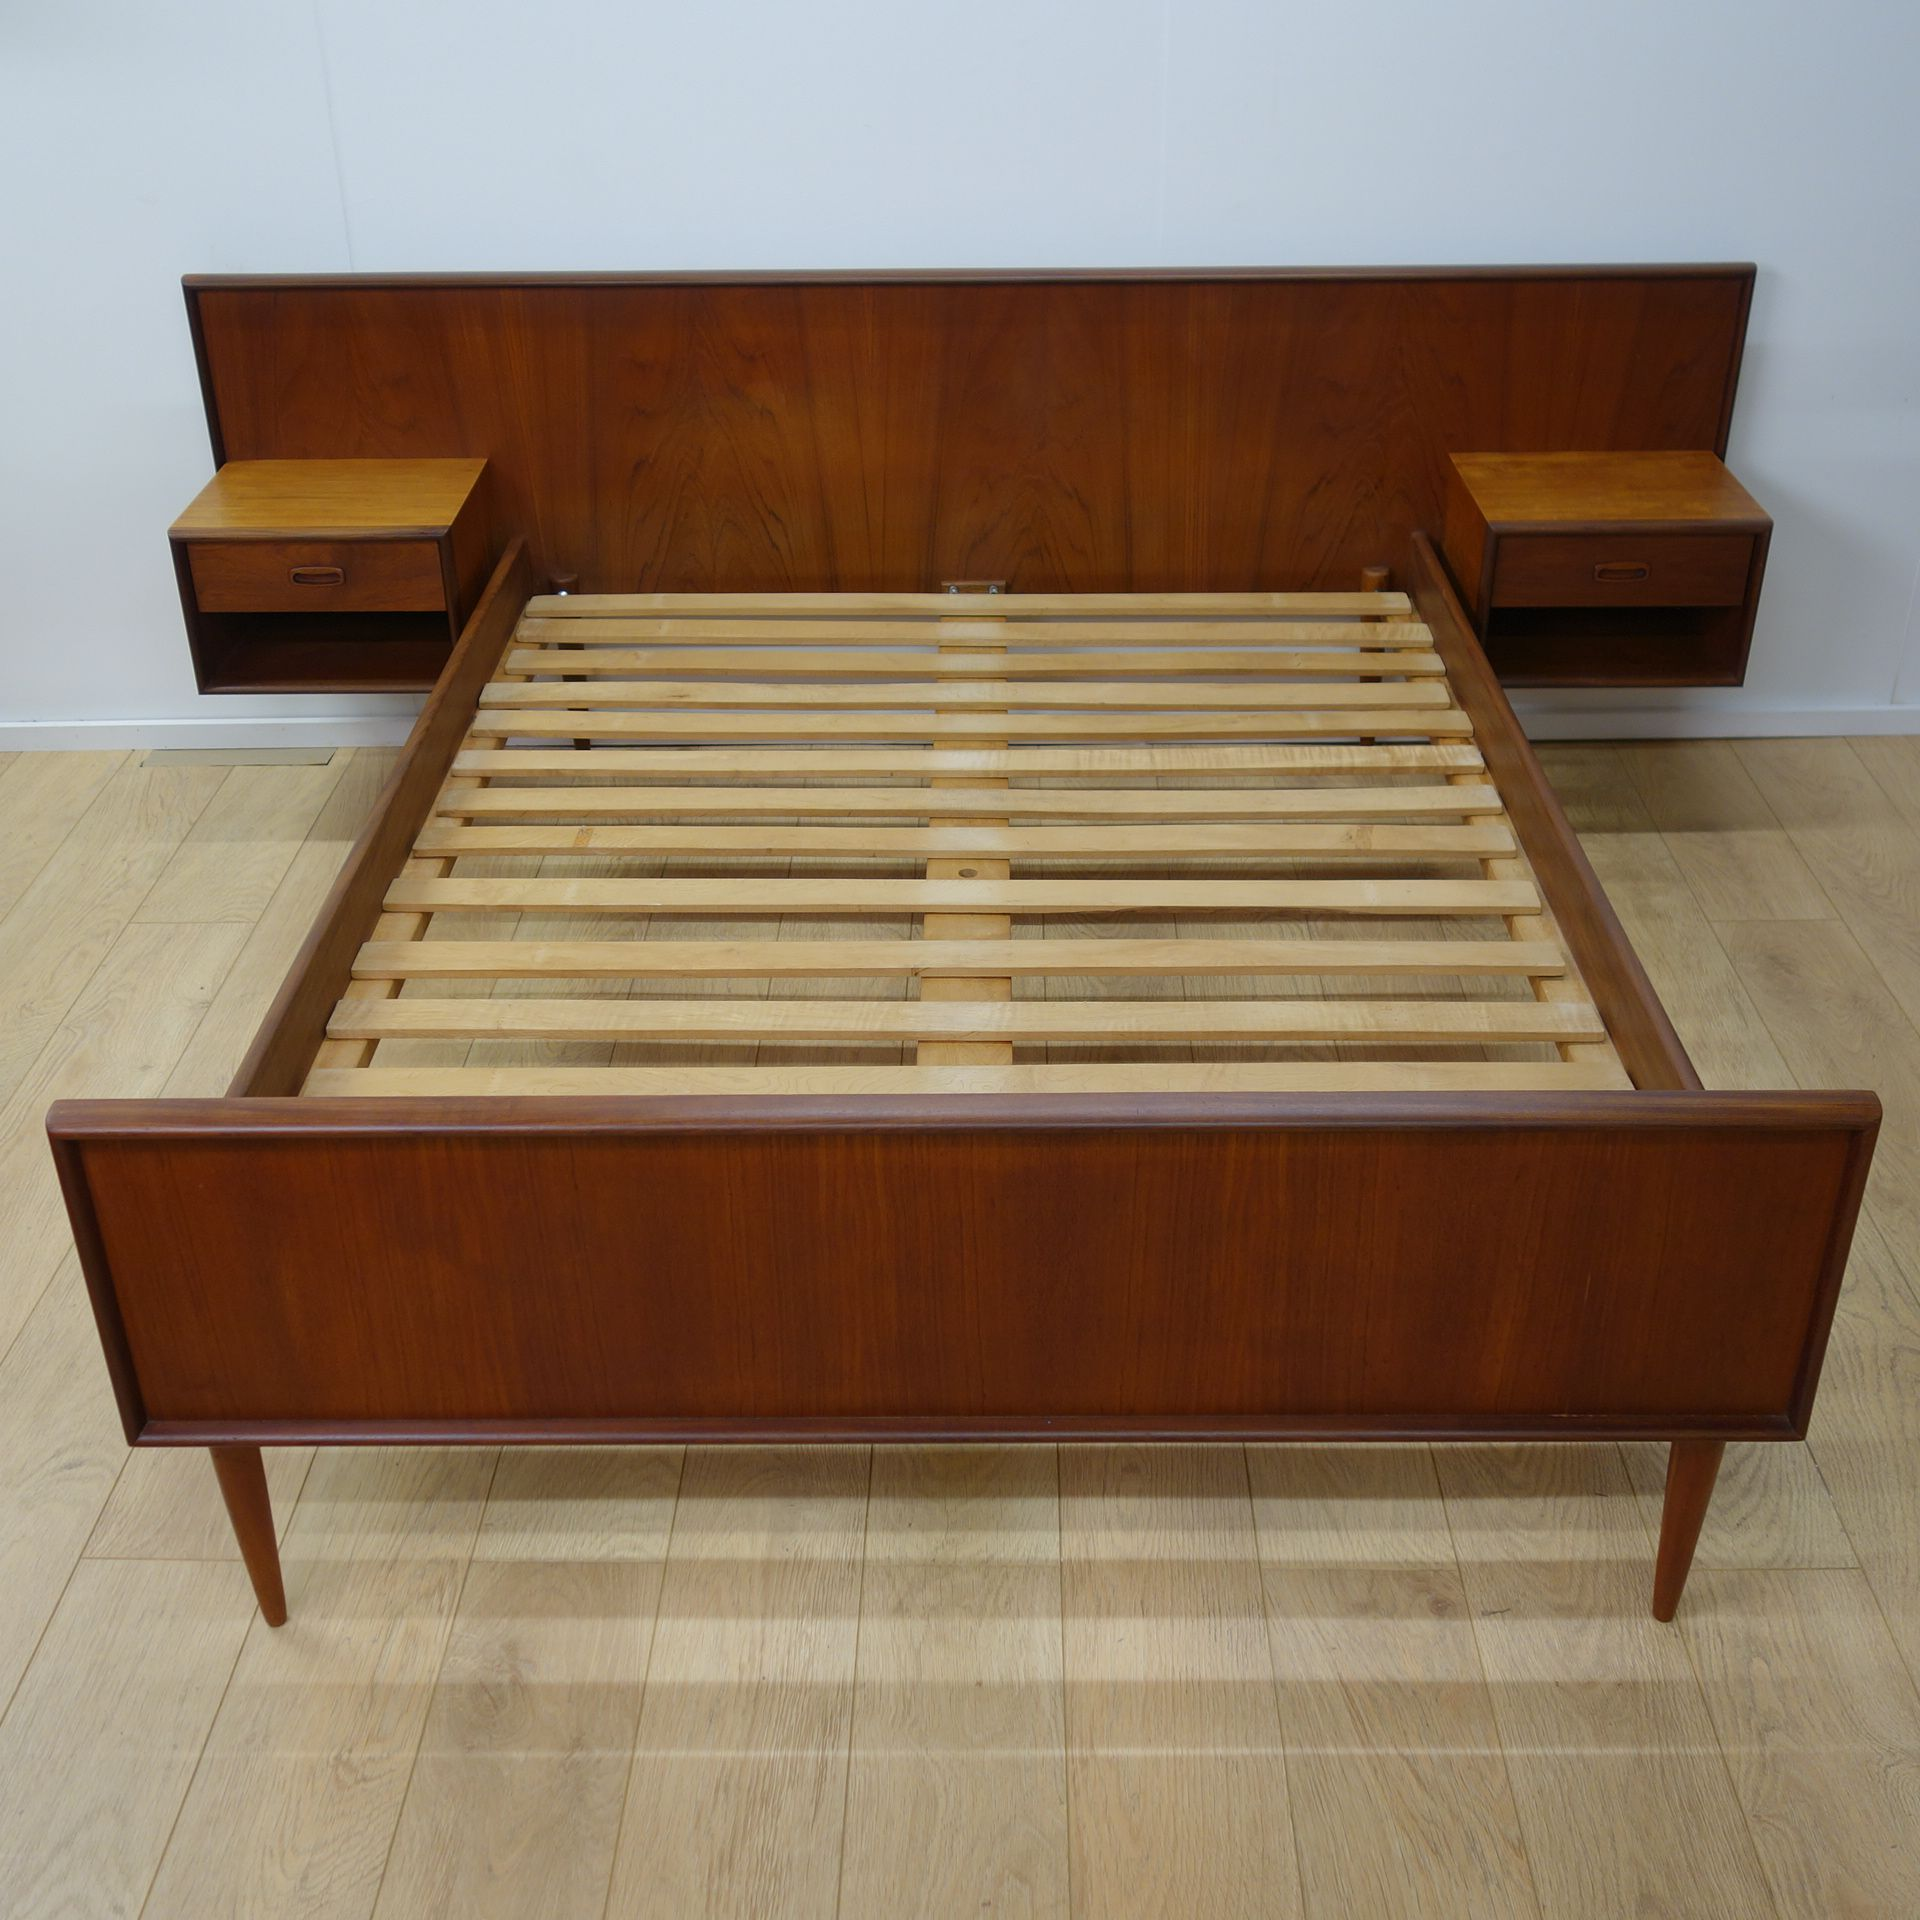 Double bed designs in wood - Midcentury Danish Teak Double Bed From Mark Parrish Mid Century Modern Furniture Midcentury Design